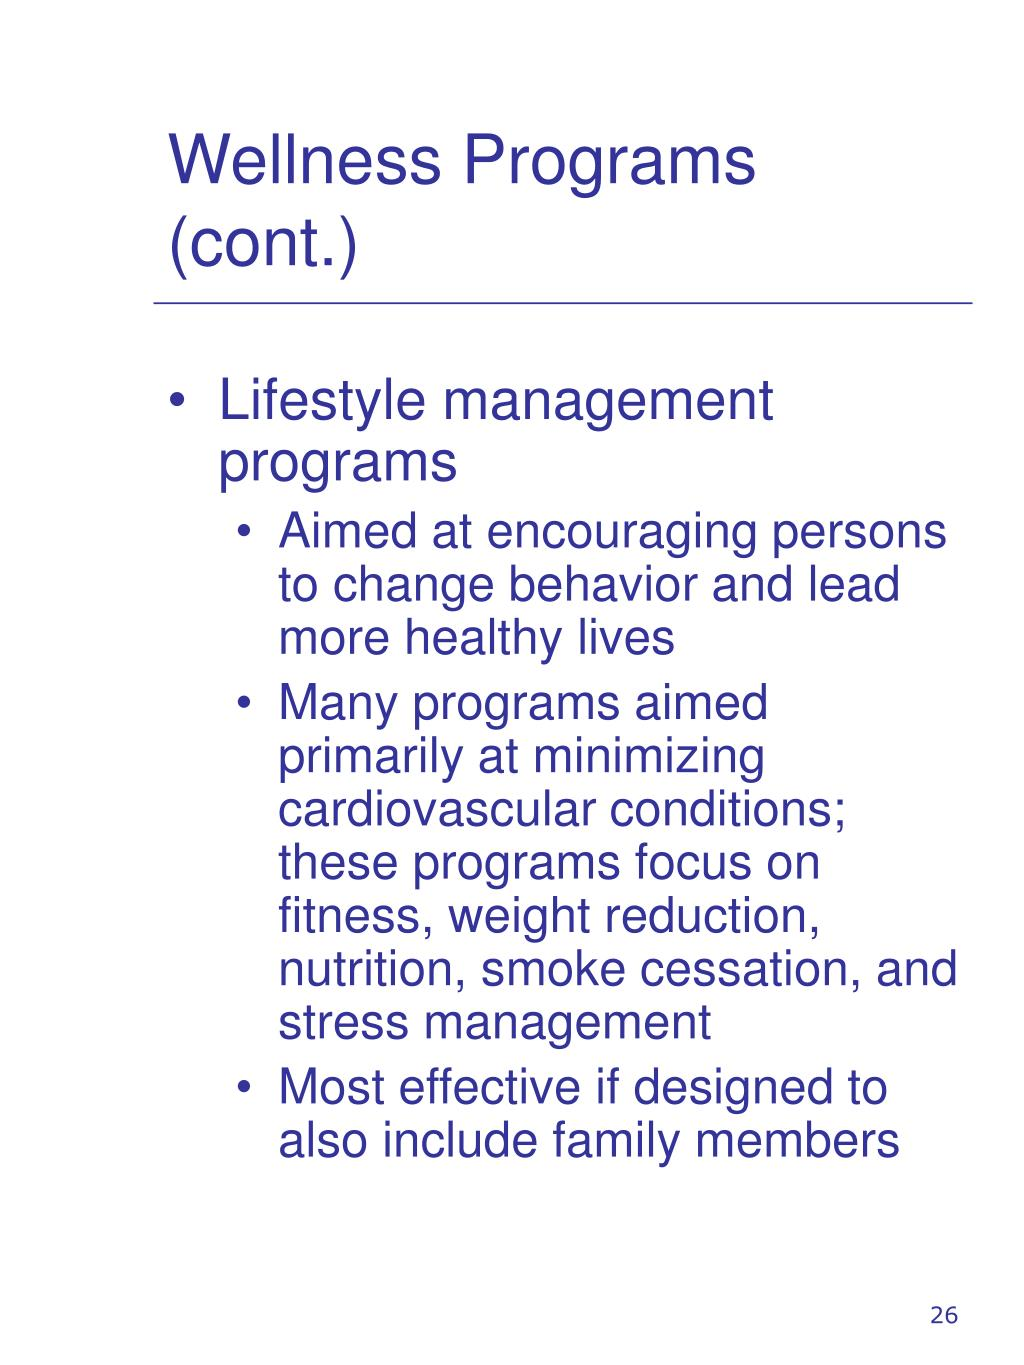 Wellness Programs (cont.)